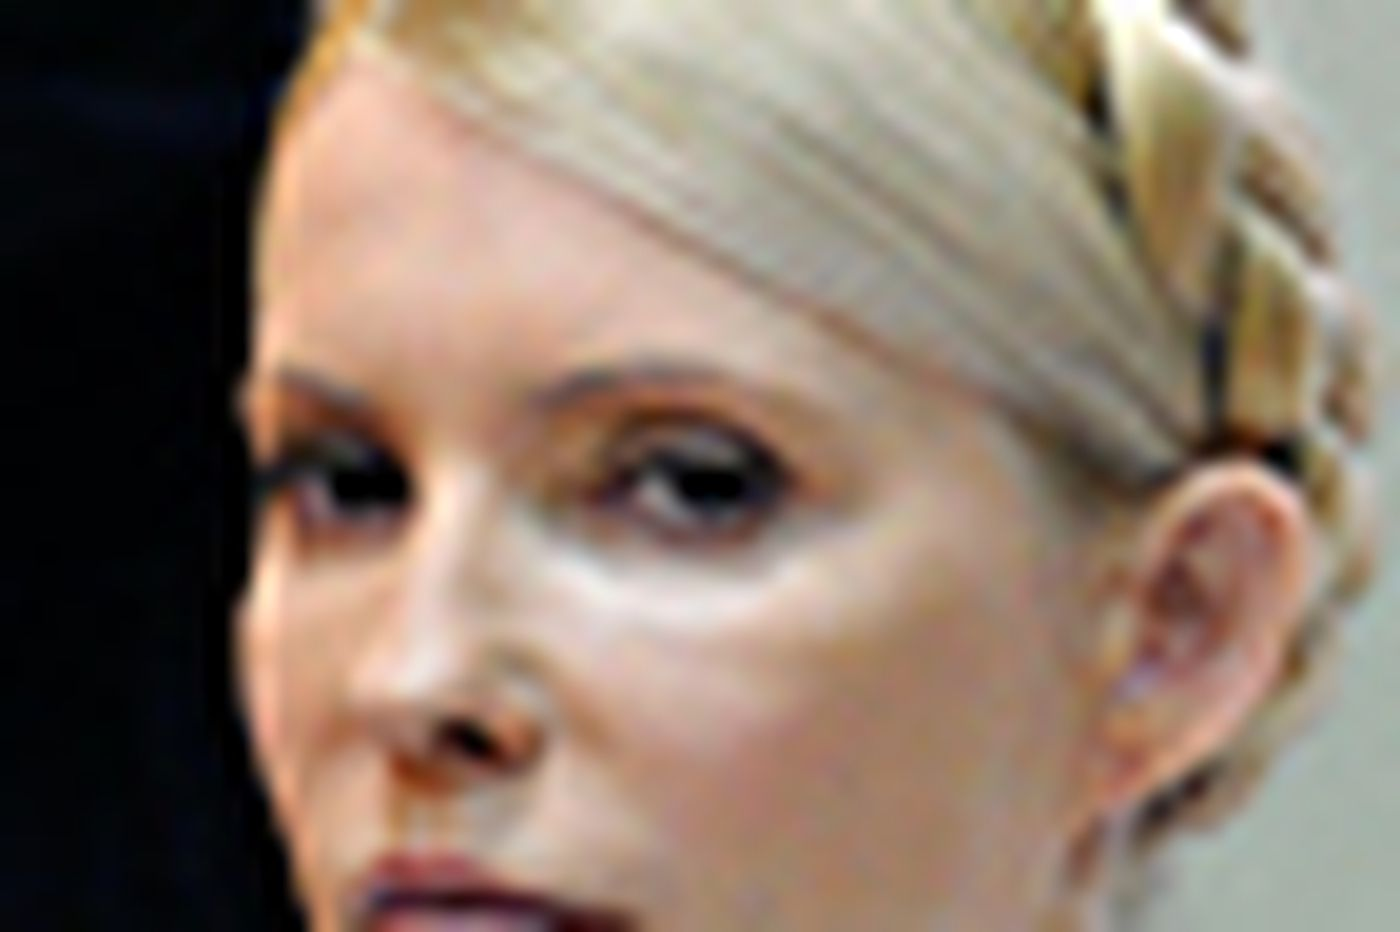 Tymoshenko to see doctors